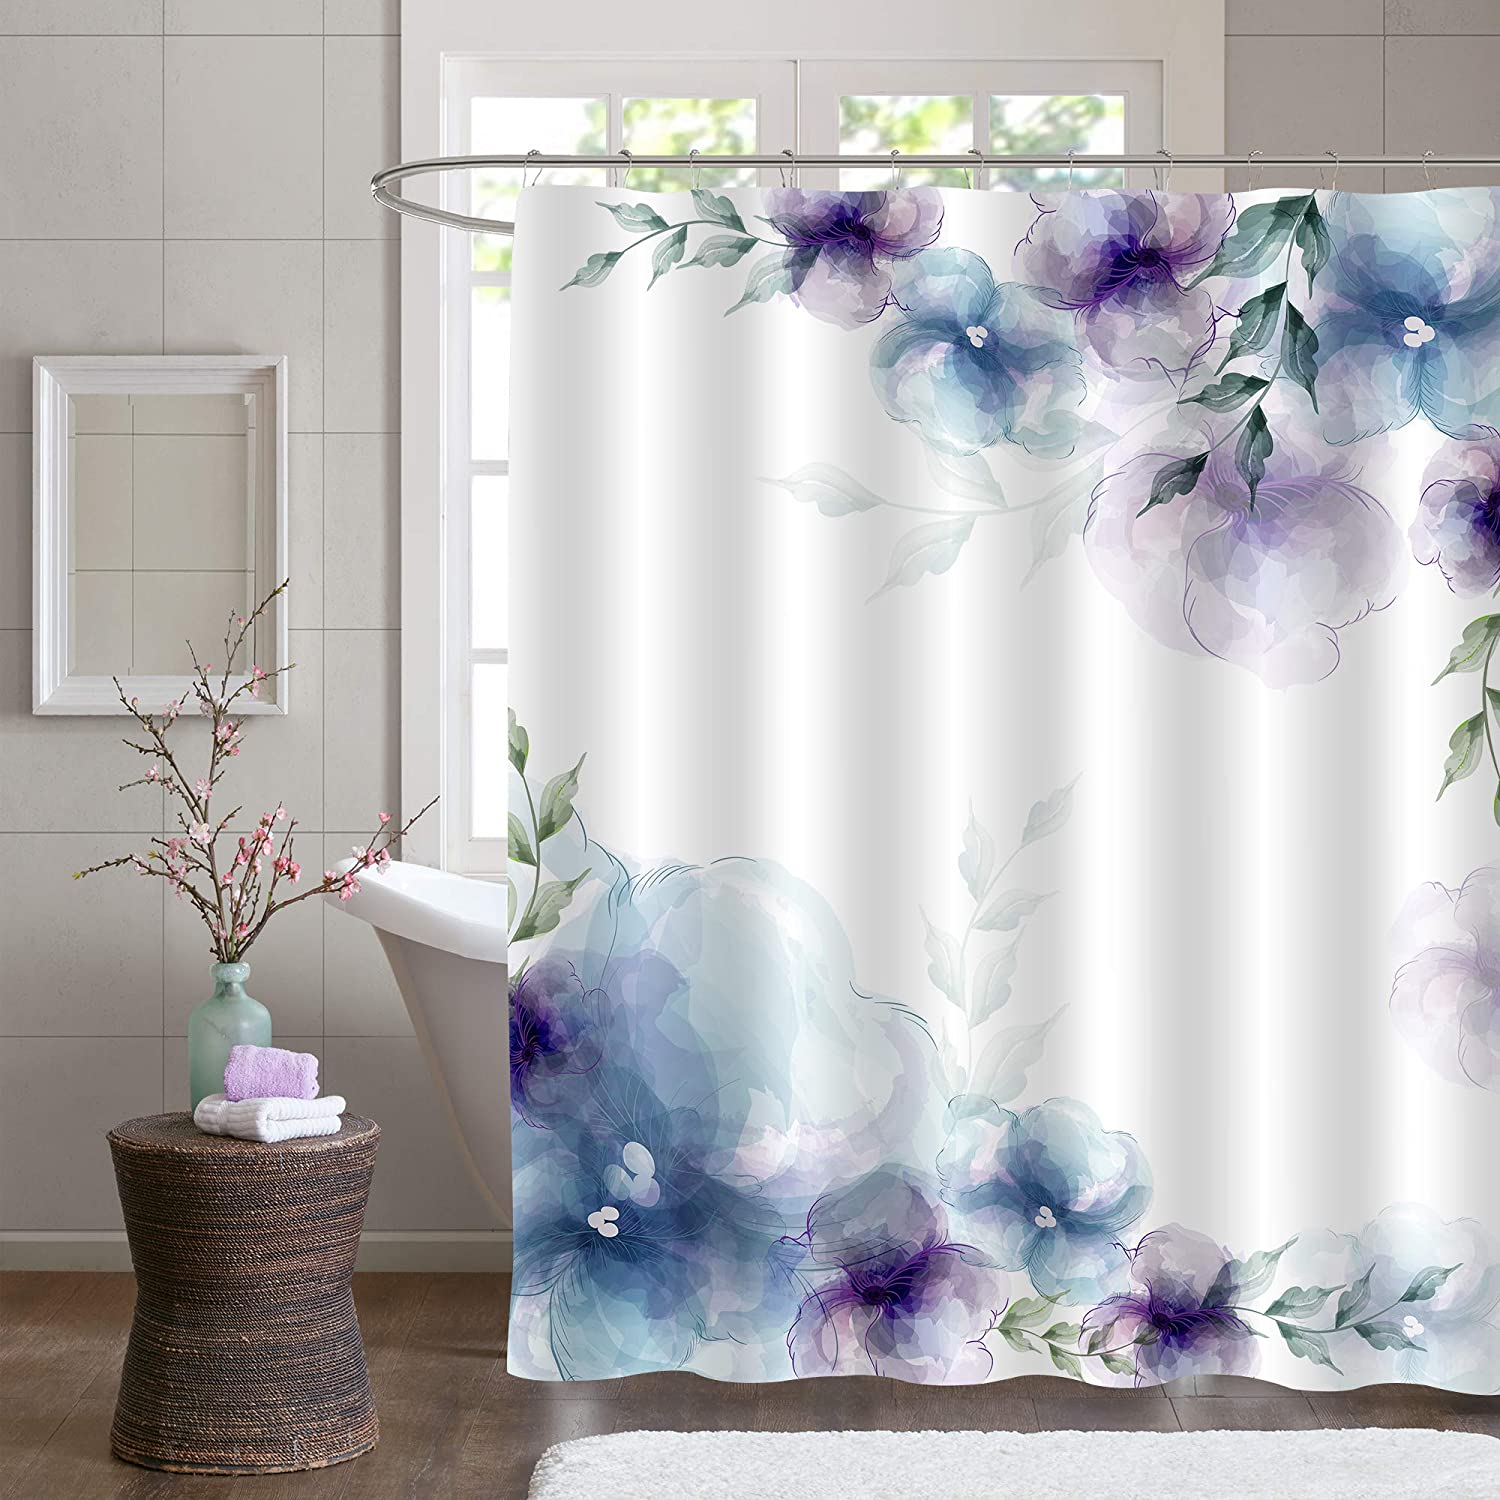 """MitoVilla Retro Spring Floral Shower Curtain, Blue Purple Flowers and Green Leaves Art Print Bathroom Accessories for Women and Girls Flowered Home Decor, 72"""" W x 72"""" L Standard for Bathtub"""